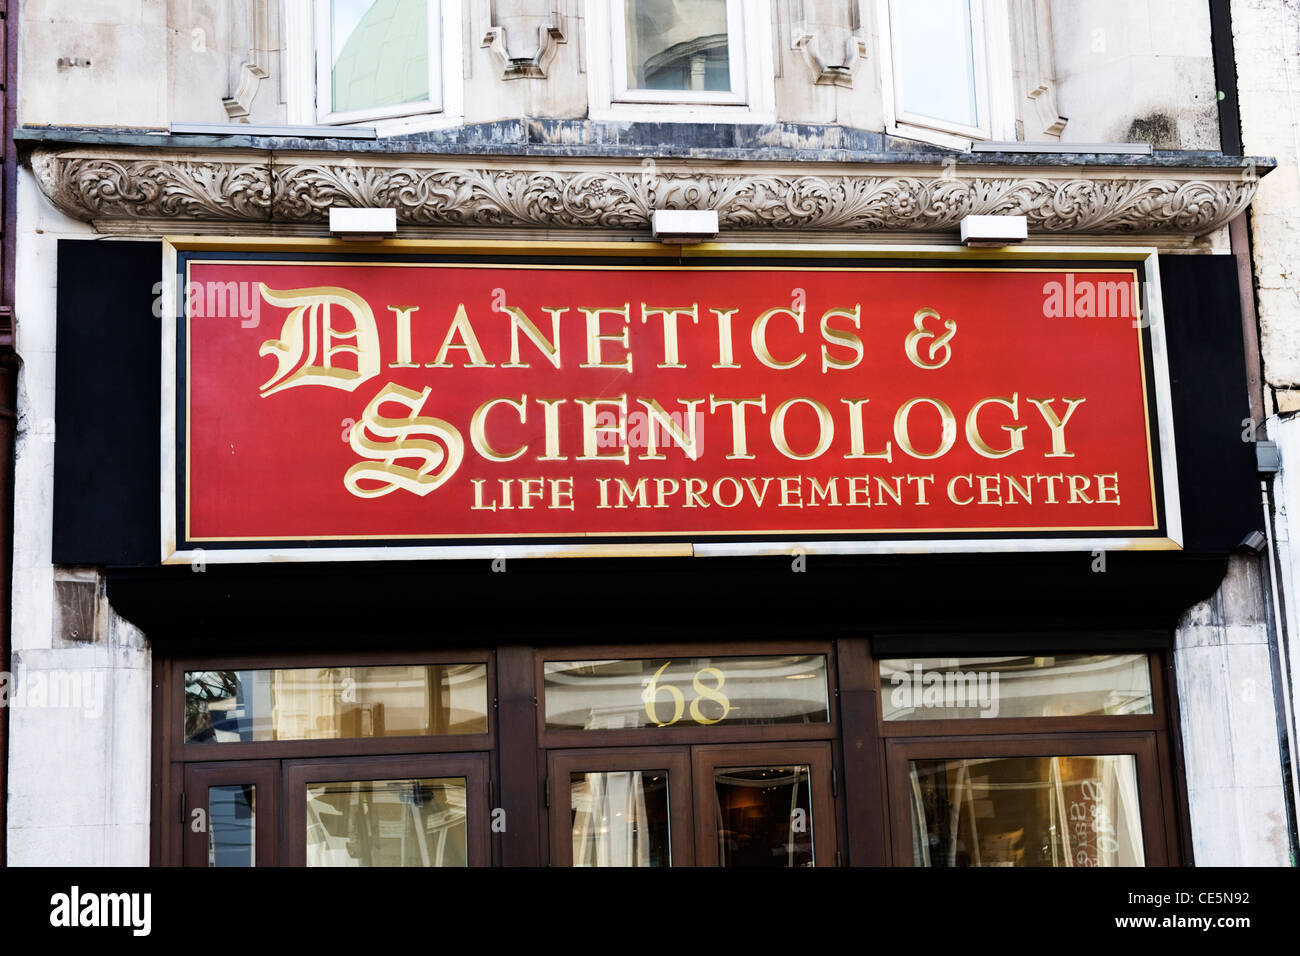 Tottenham Court Road West End London offices Life Improvement Centre of the controversial Dianetics & Scientology - Stock Image